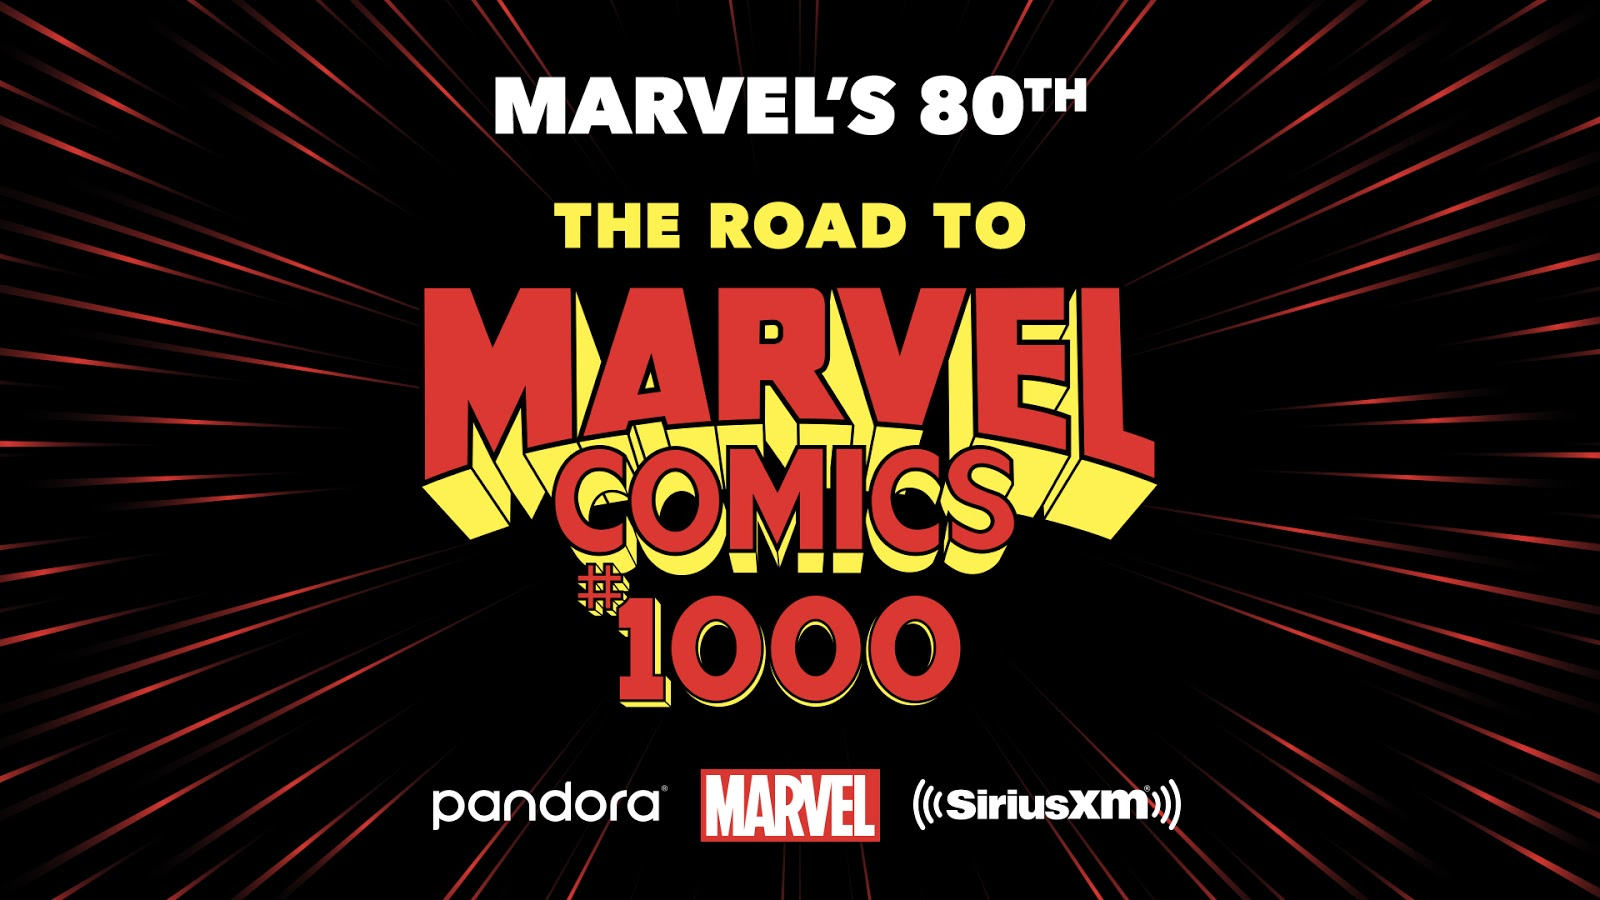 Siriusxm Christmas 2019.Marvel And Sirius Xm To Launch Marvel S 80th The Road To